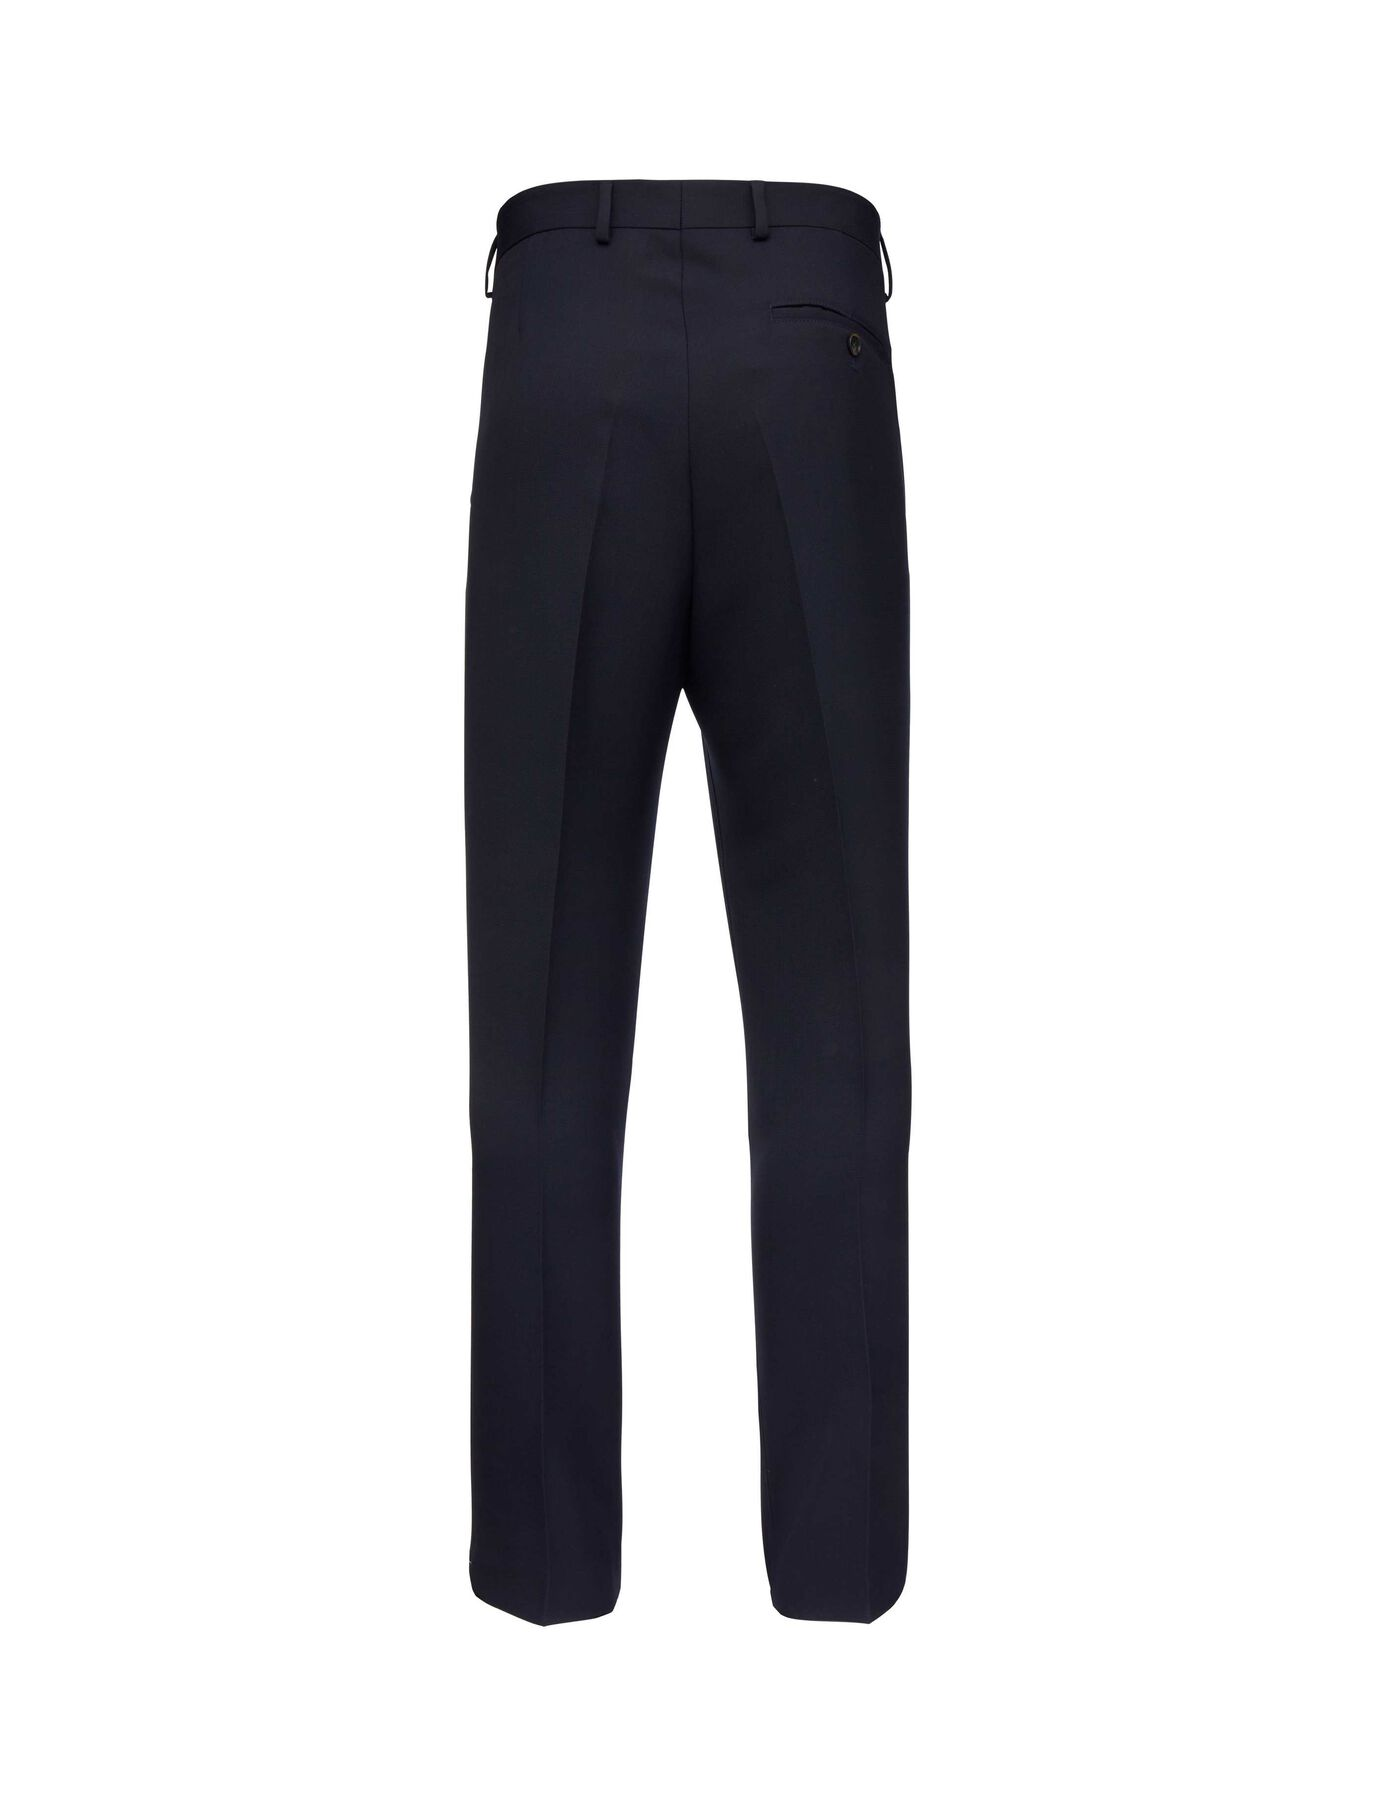 TYLIER TROUSERS in Light Ink from Tiger of Sweden